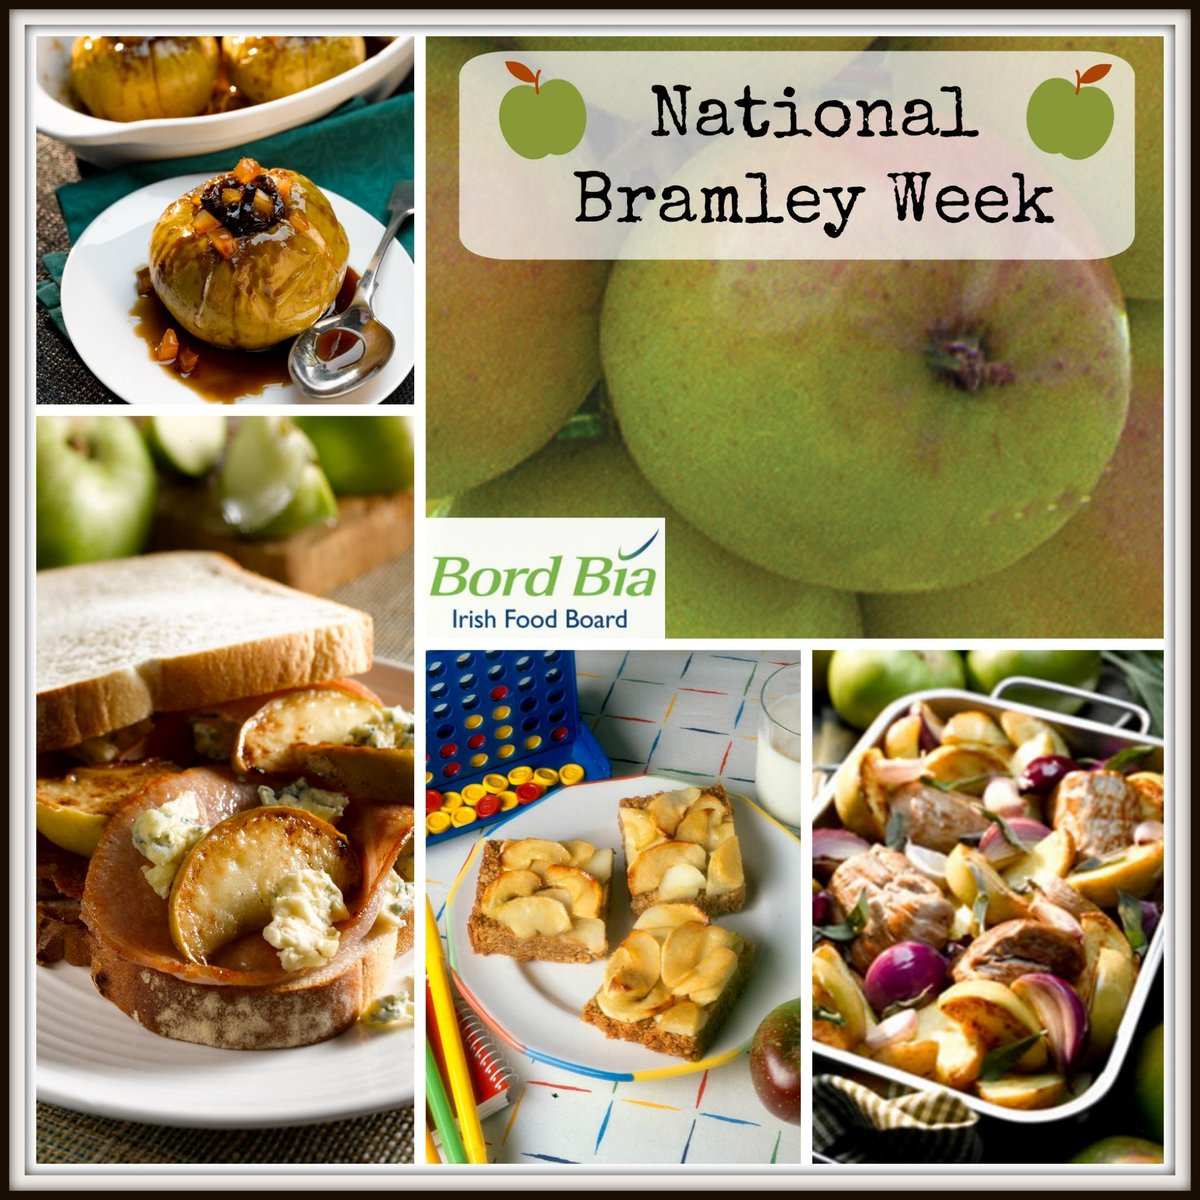 To celebrate #NationalBramleyWeek you could win an apple hamper from @towncountryhamp. RT to enter. #competition http://t.co/TPFNm31KlU